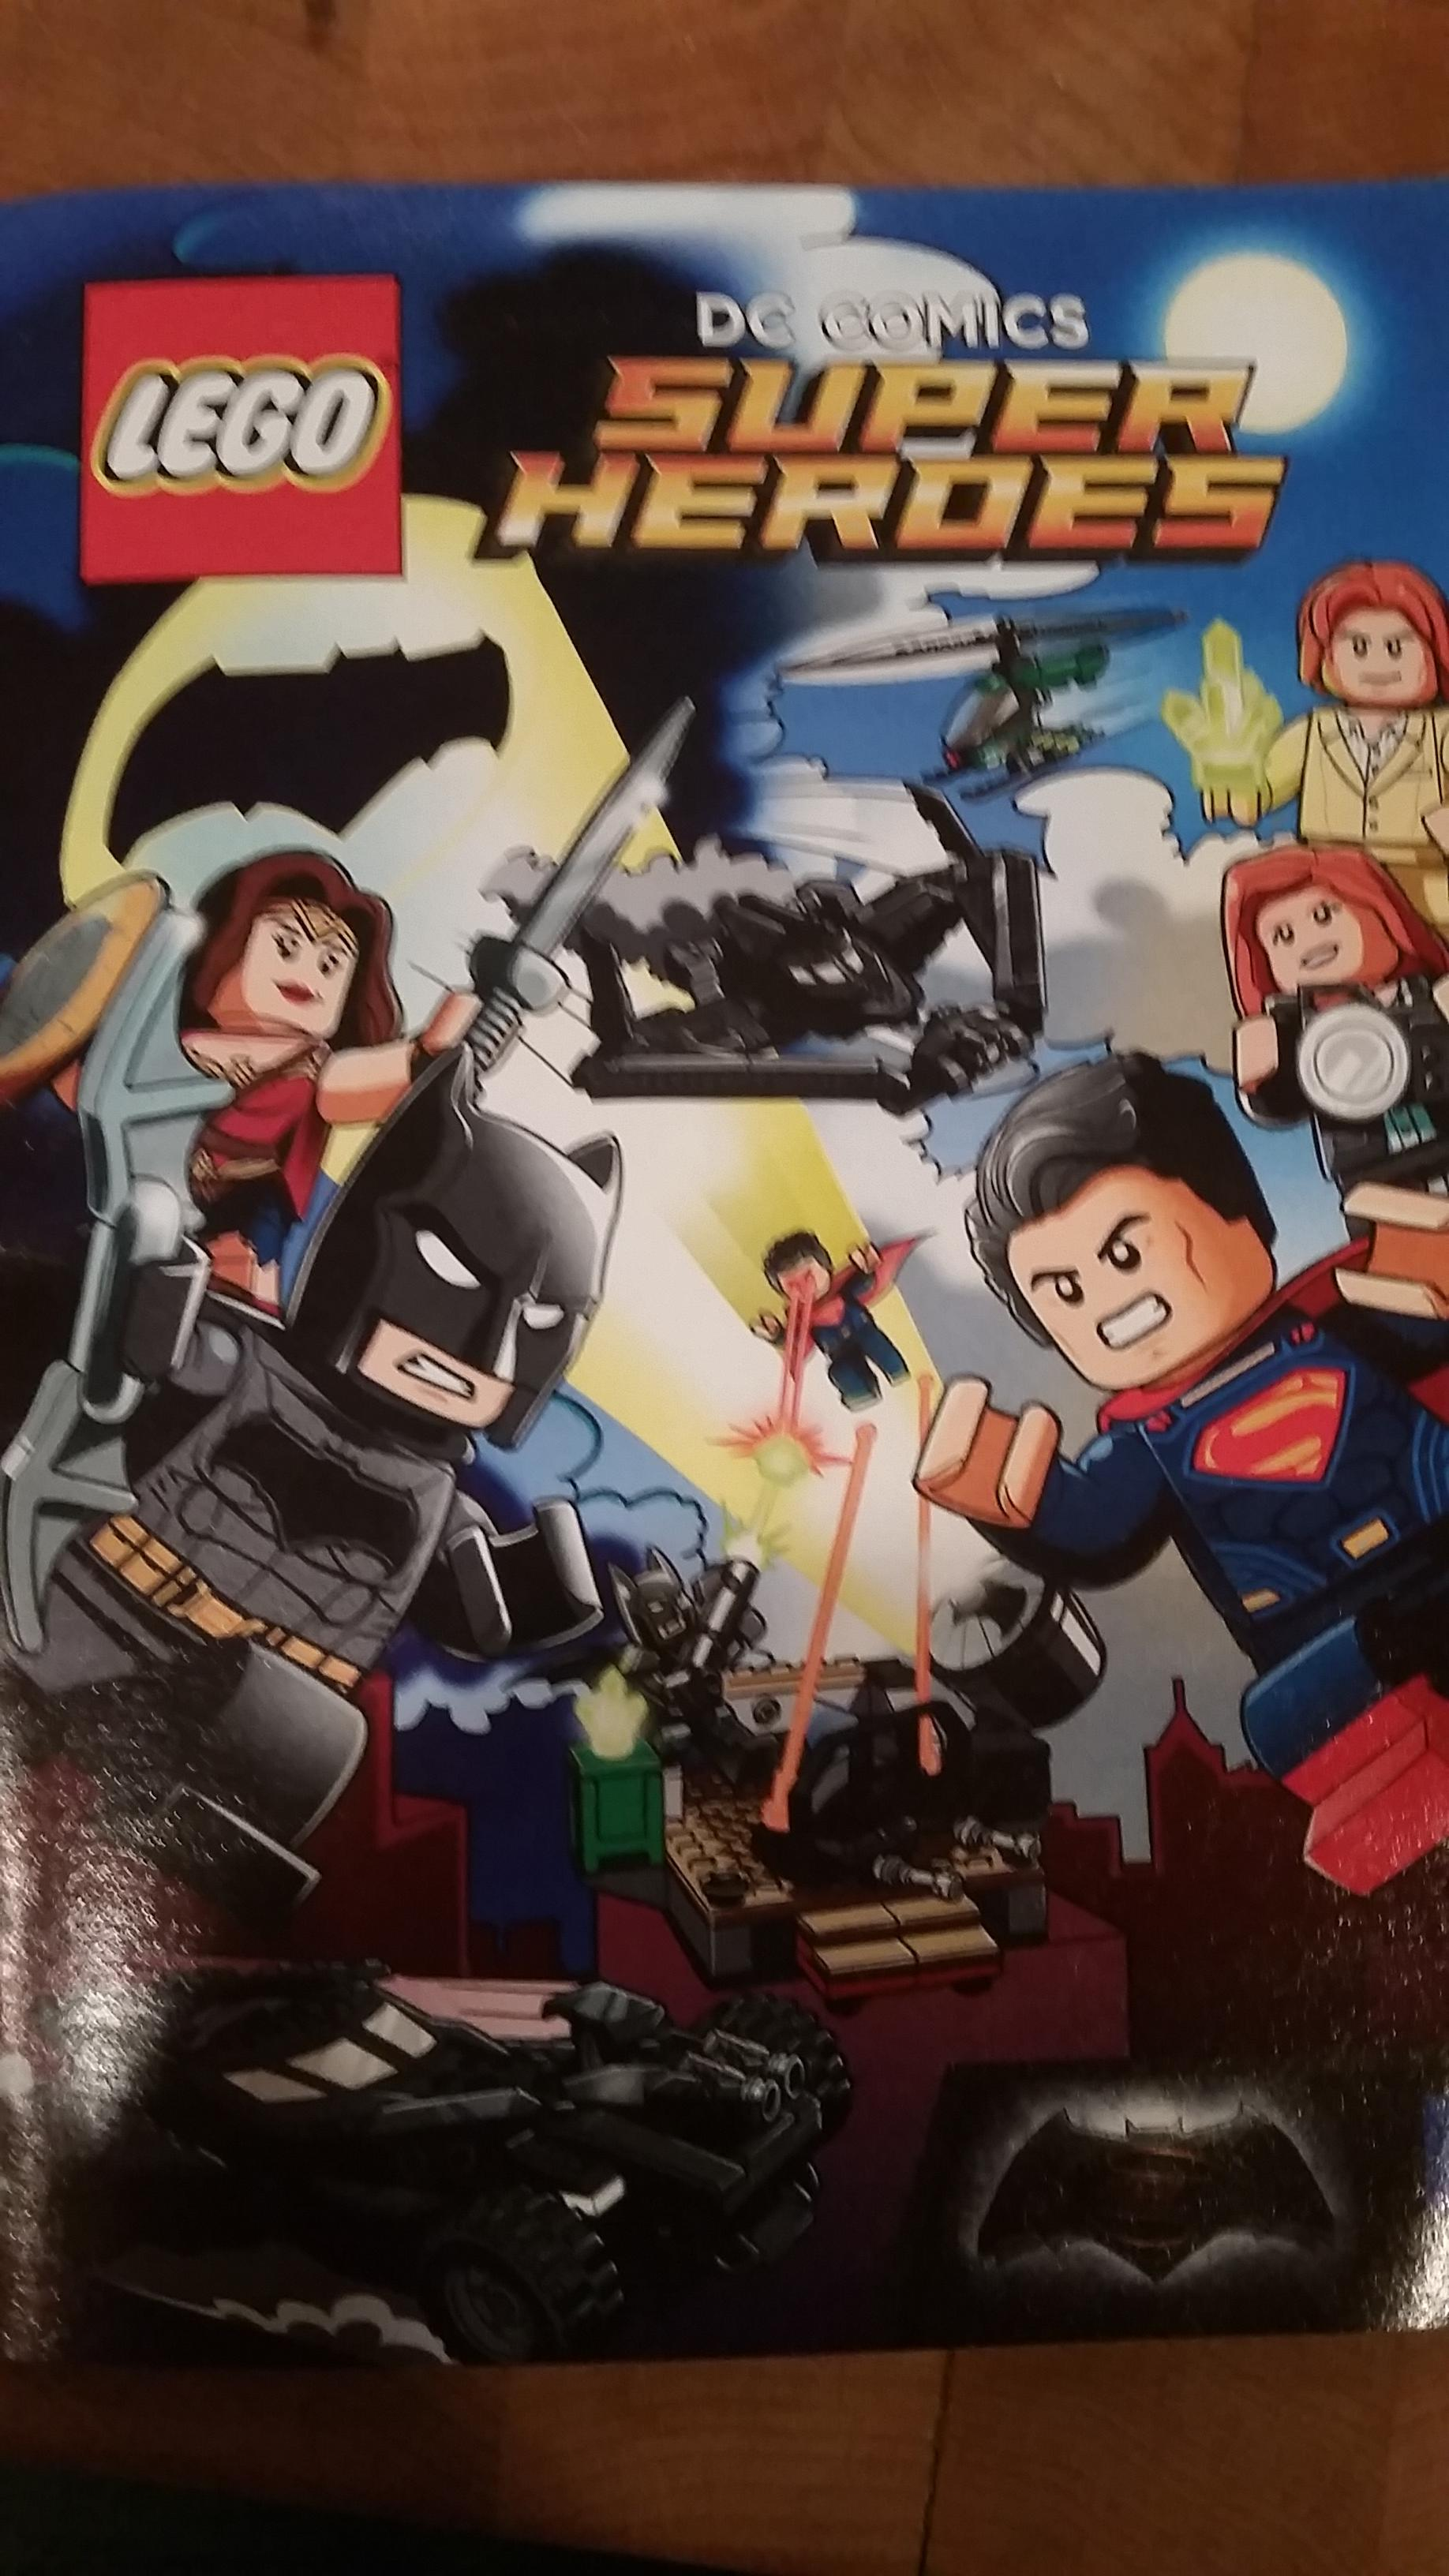 Batman V Superman: Dawn Of Justice LEGO Comic May Shed Light On Film's Action Scenes